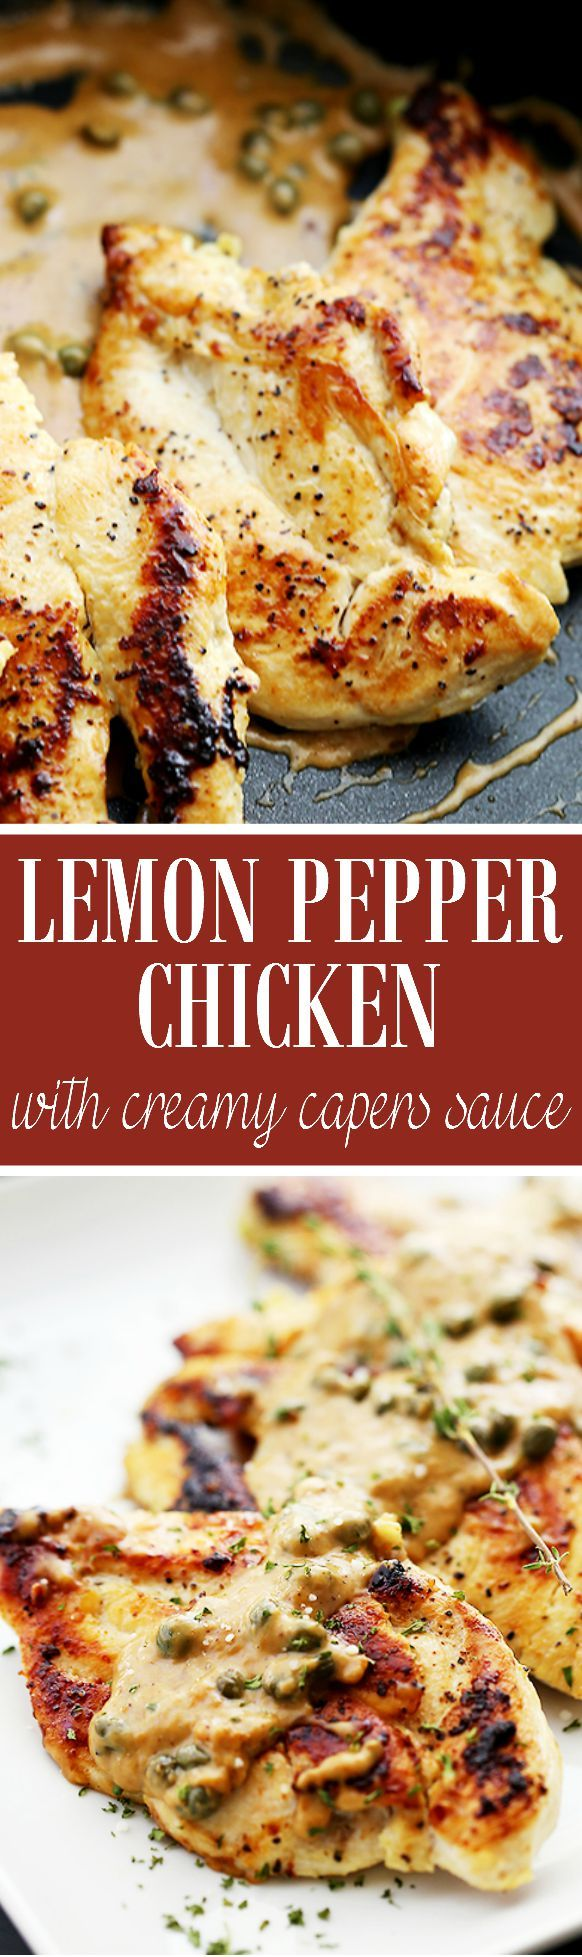 asics online cheap australia Lemon Pepper Chicken with Creamy Capers Sauce   www diethood com   Juicy  flavorful Lemon Pepper Chicken served with a lightened up cream sauce and capers